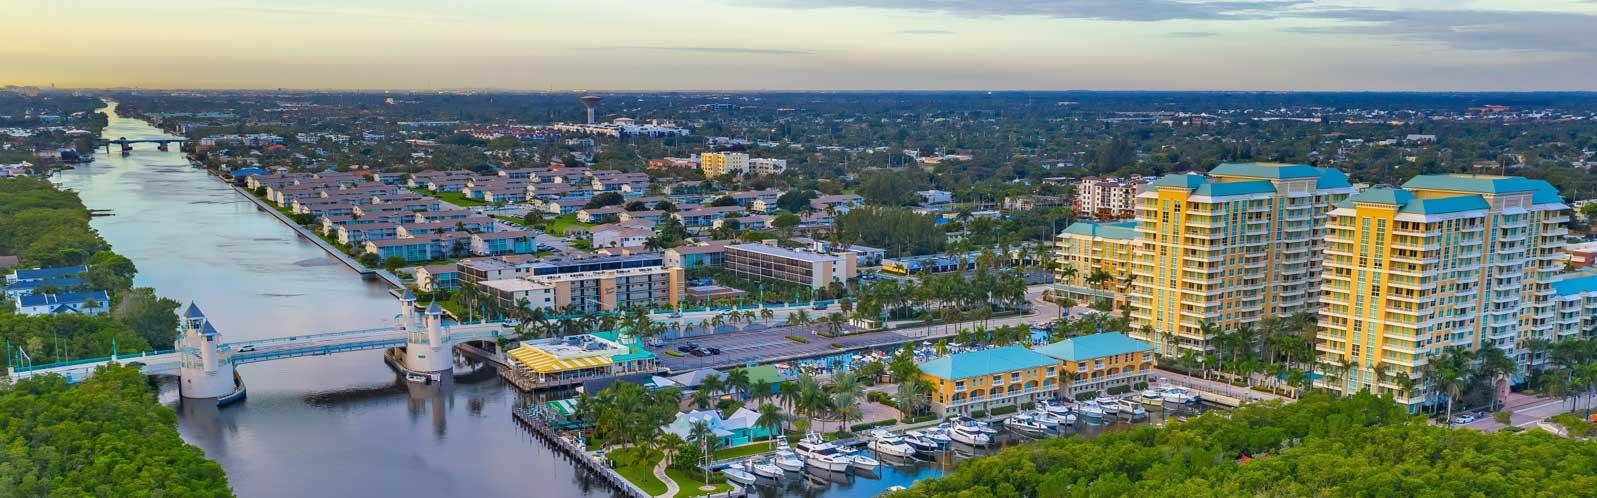 Aerial view looking southward over Ocean Ave. bridge and Intracoastal communities.